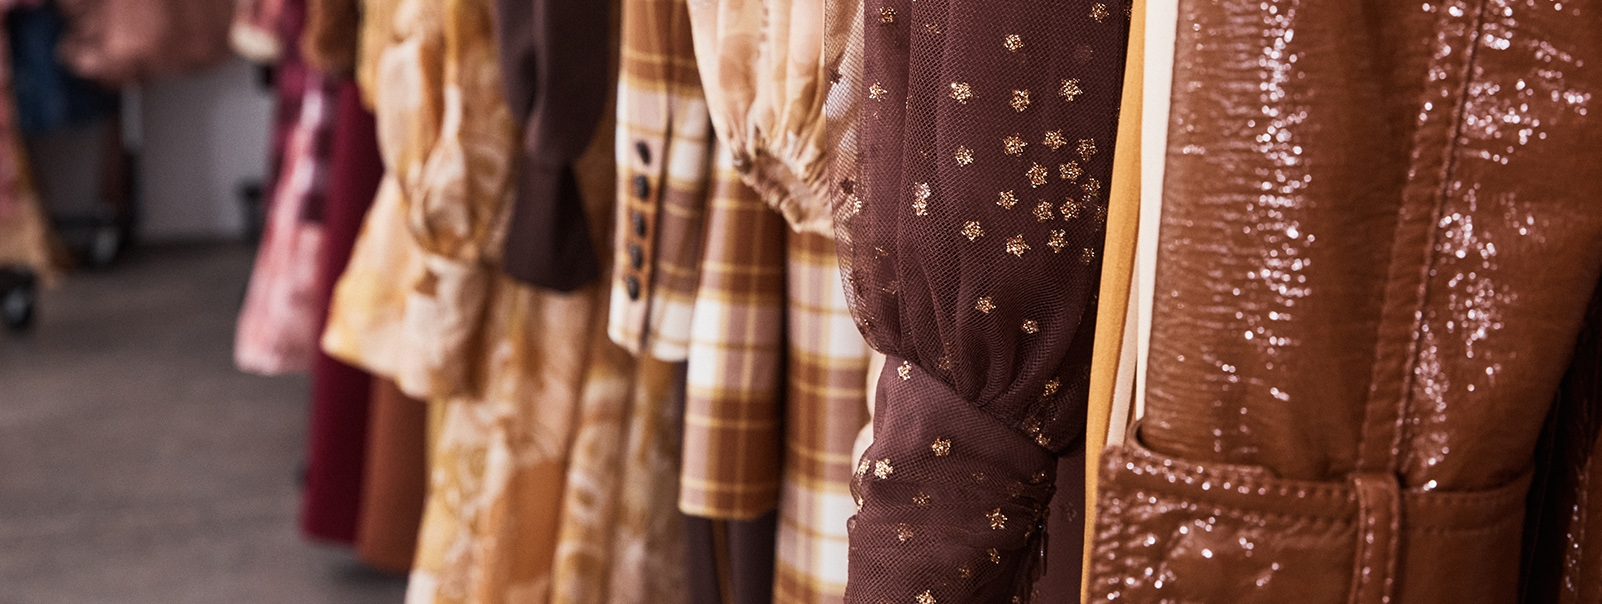 Detail image of the Fall 2021 collection